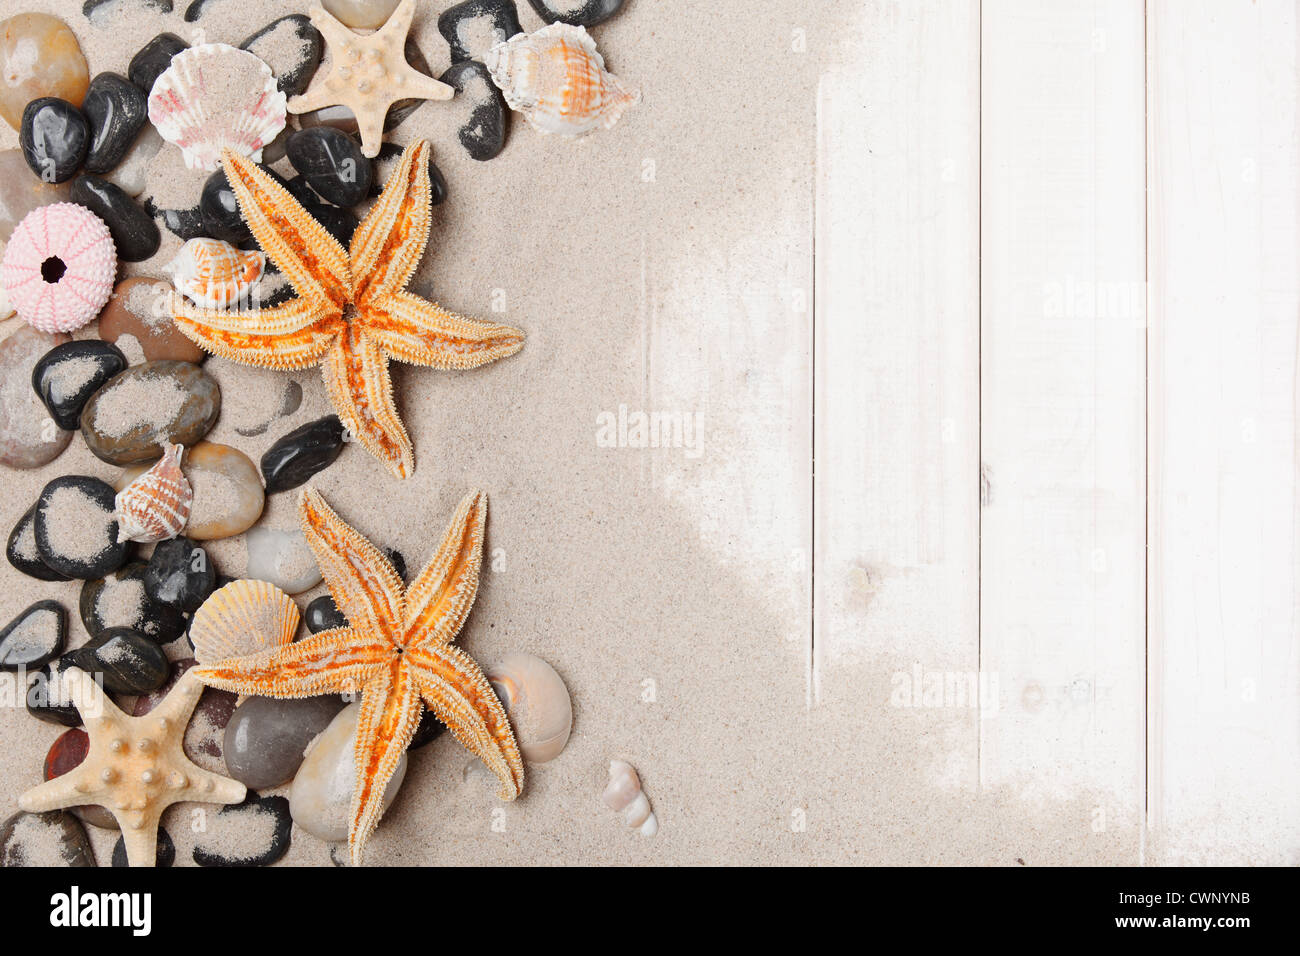 Star fish,pebbles,sand and wood background. - Stock Image